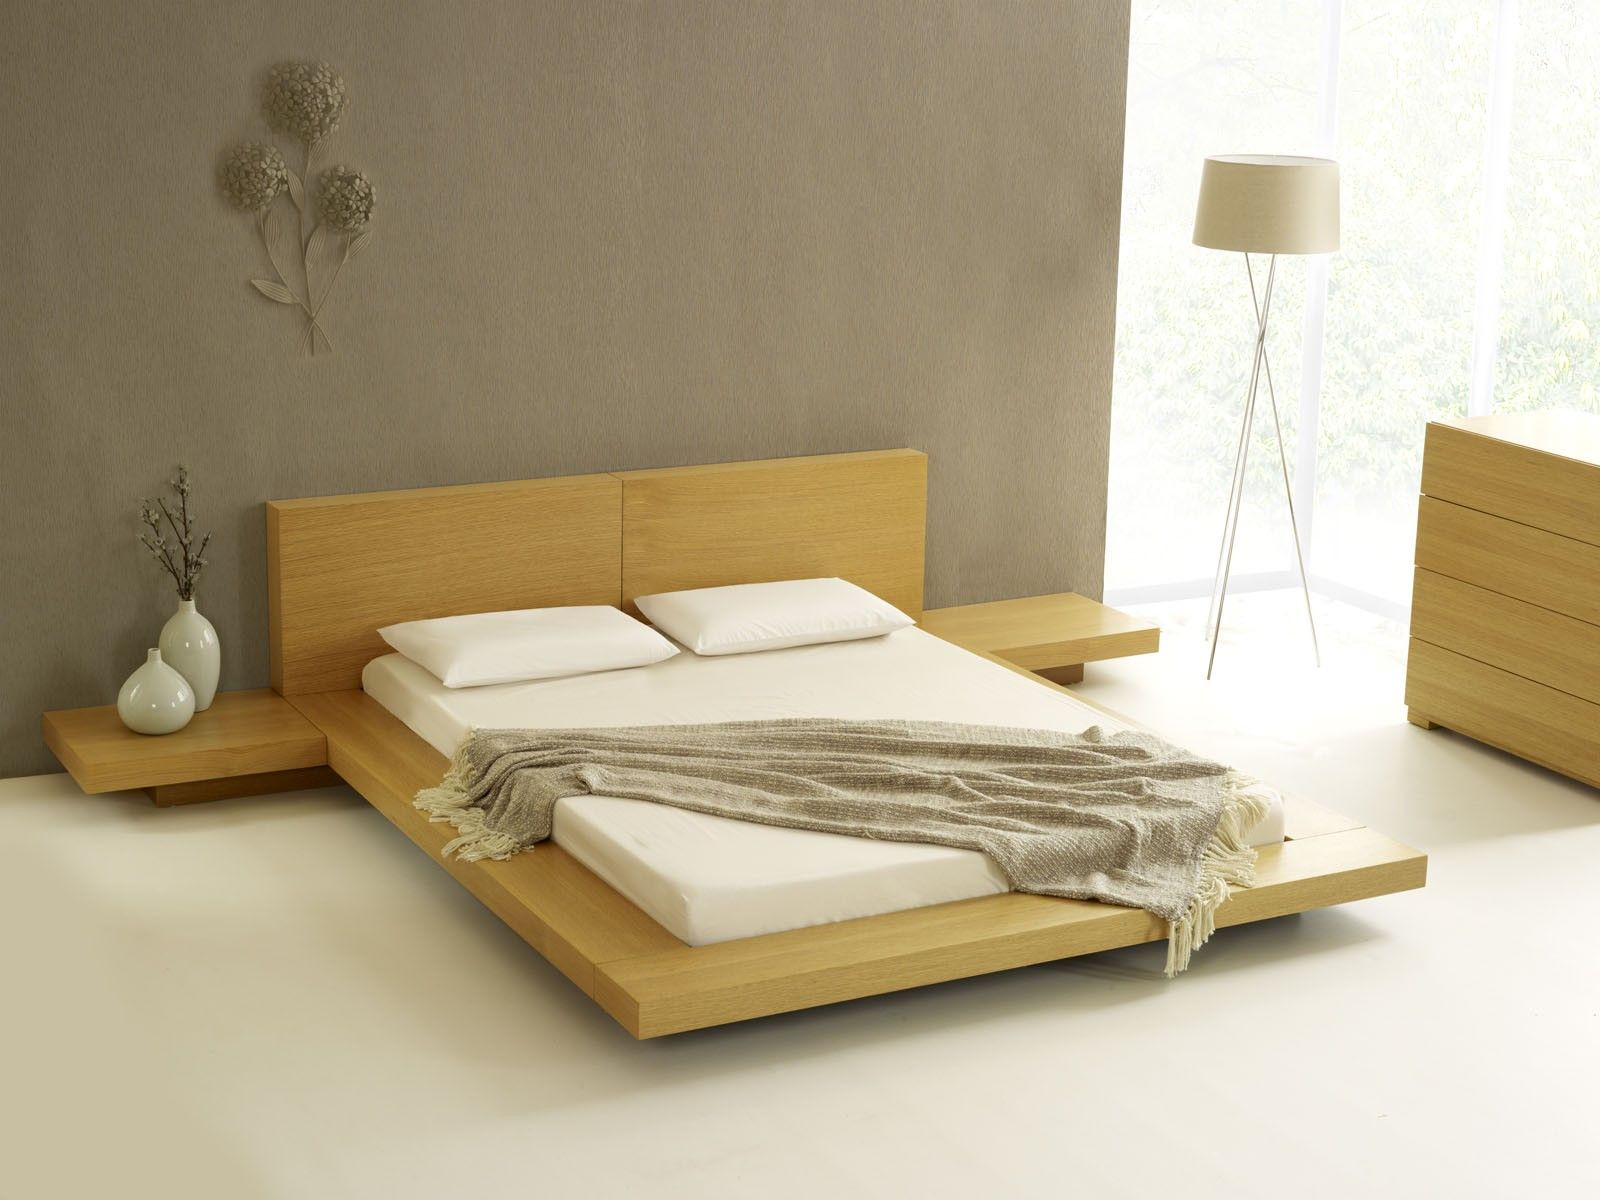 10 best images about bedroom on pinterest | contemporary platform